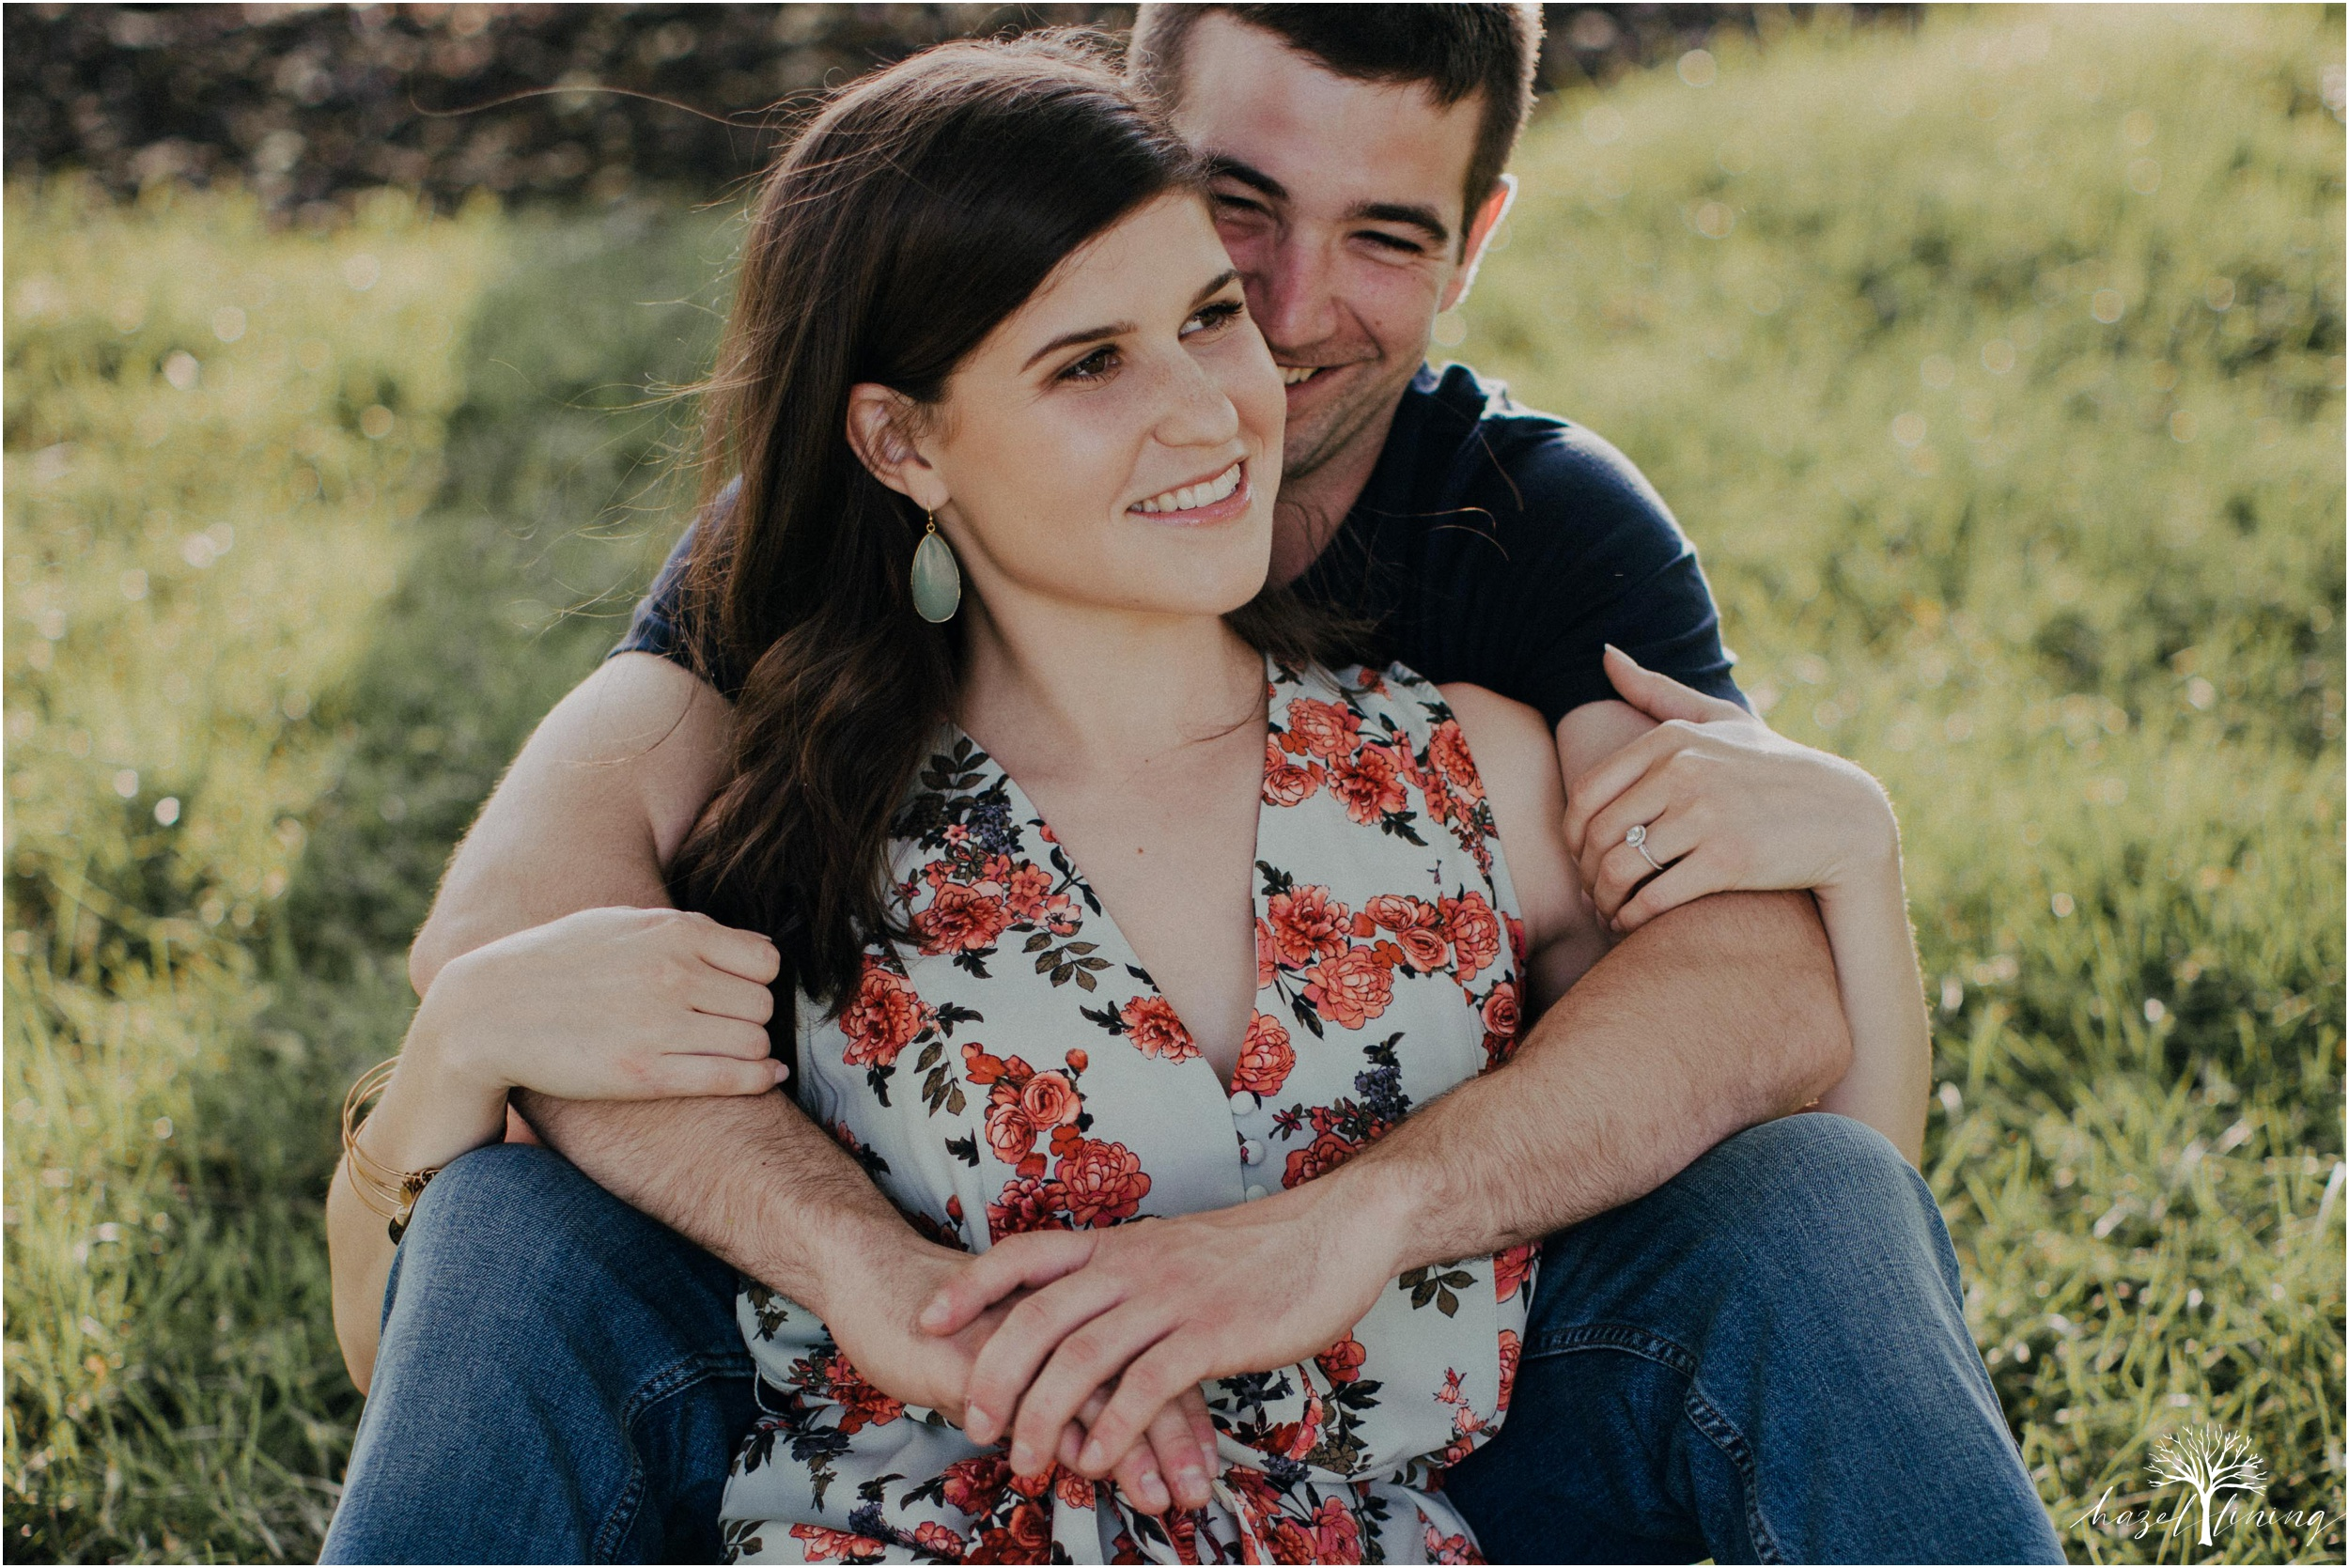 ellyn-jack-kutztown-university-of-pennsylvania-engagement-session-hazel-lining-photography-destination-elopement-wedding-engagement-photography_0239.jpg